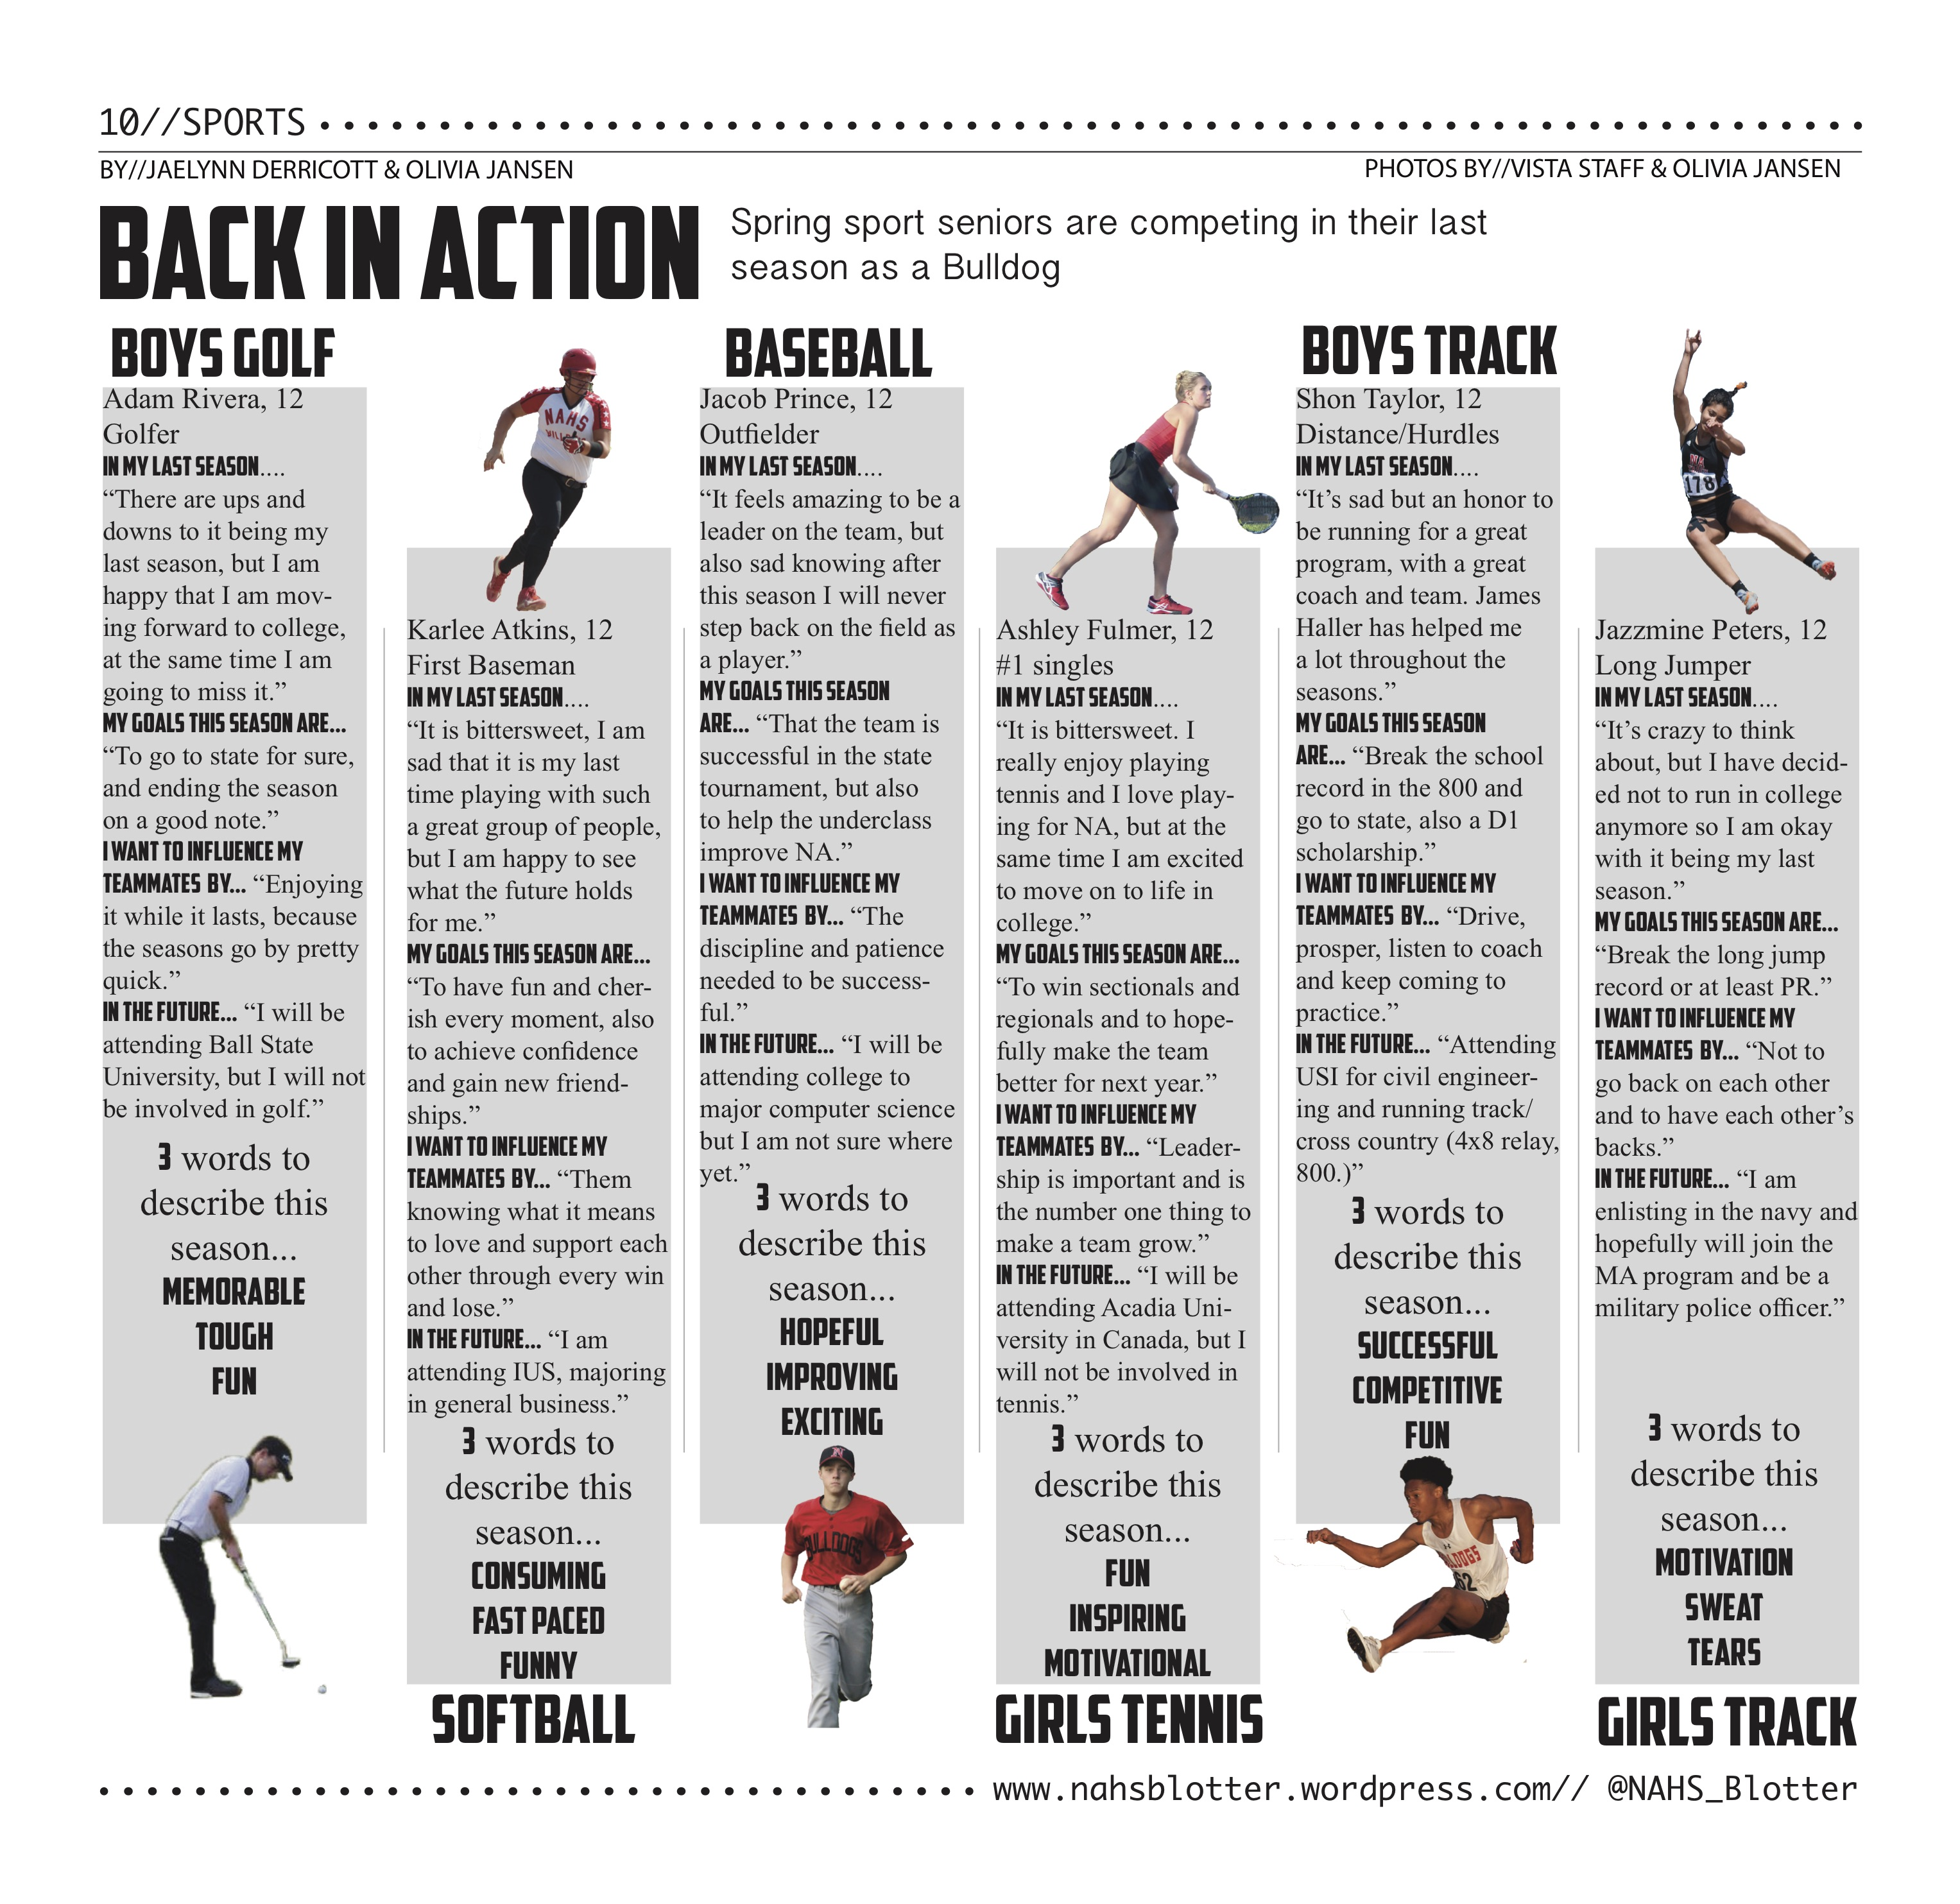 Spring sports: Back in Action // April Print Edition by//Jaelynn Derricott & Olivia Jansen